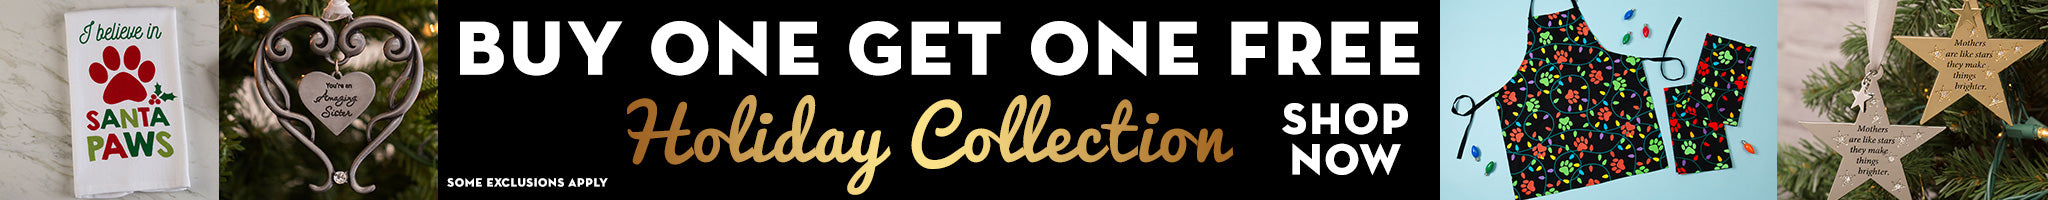 Buy 1, Get 1 Free On Our Holiday Collection